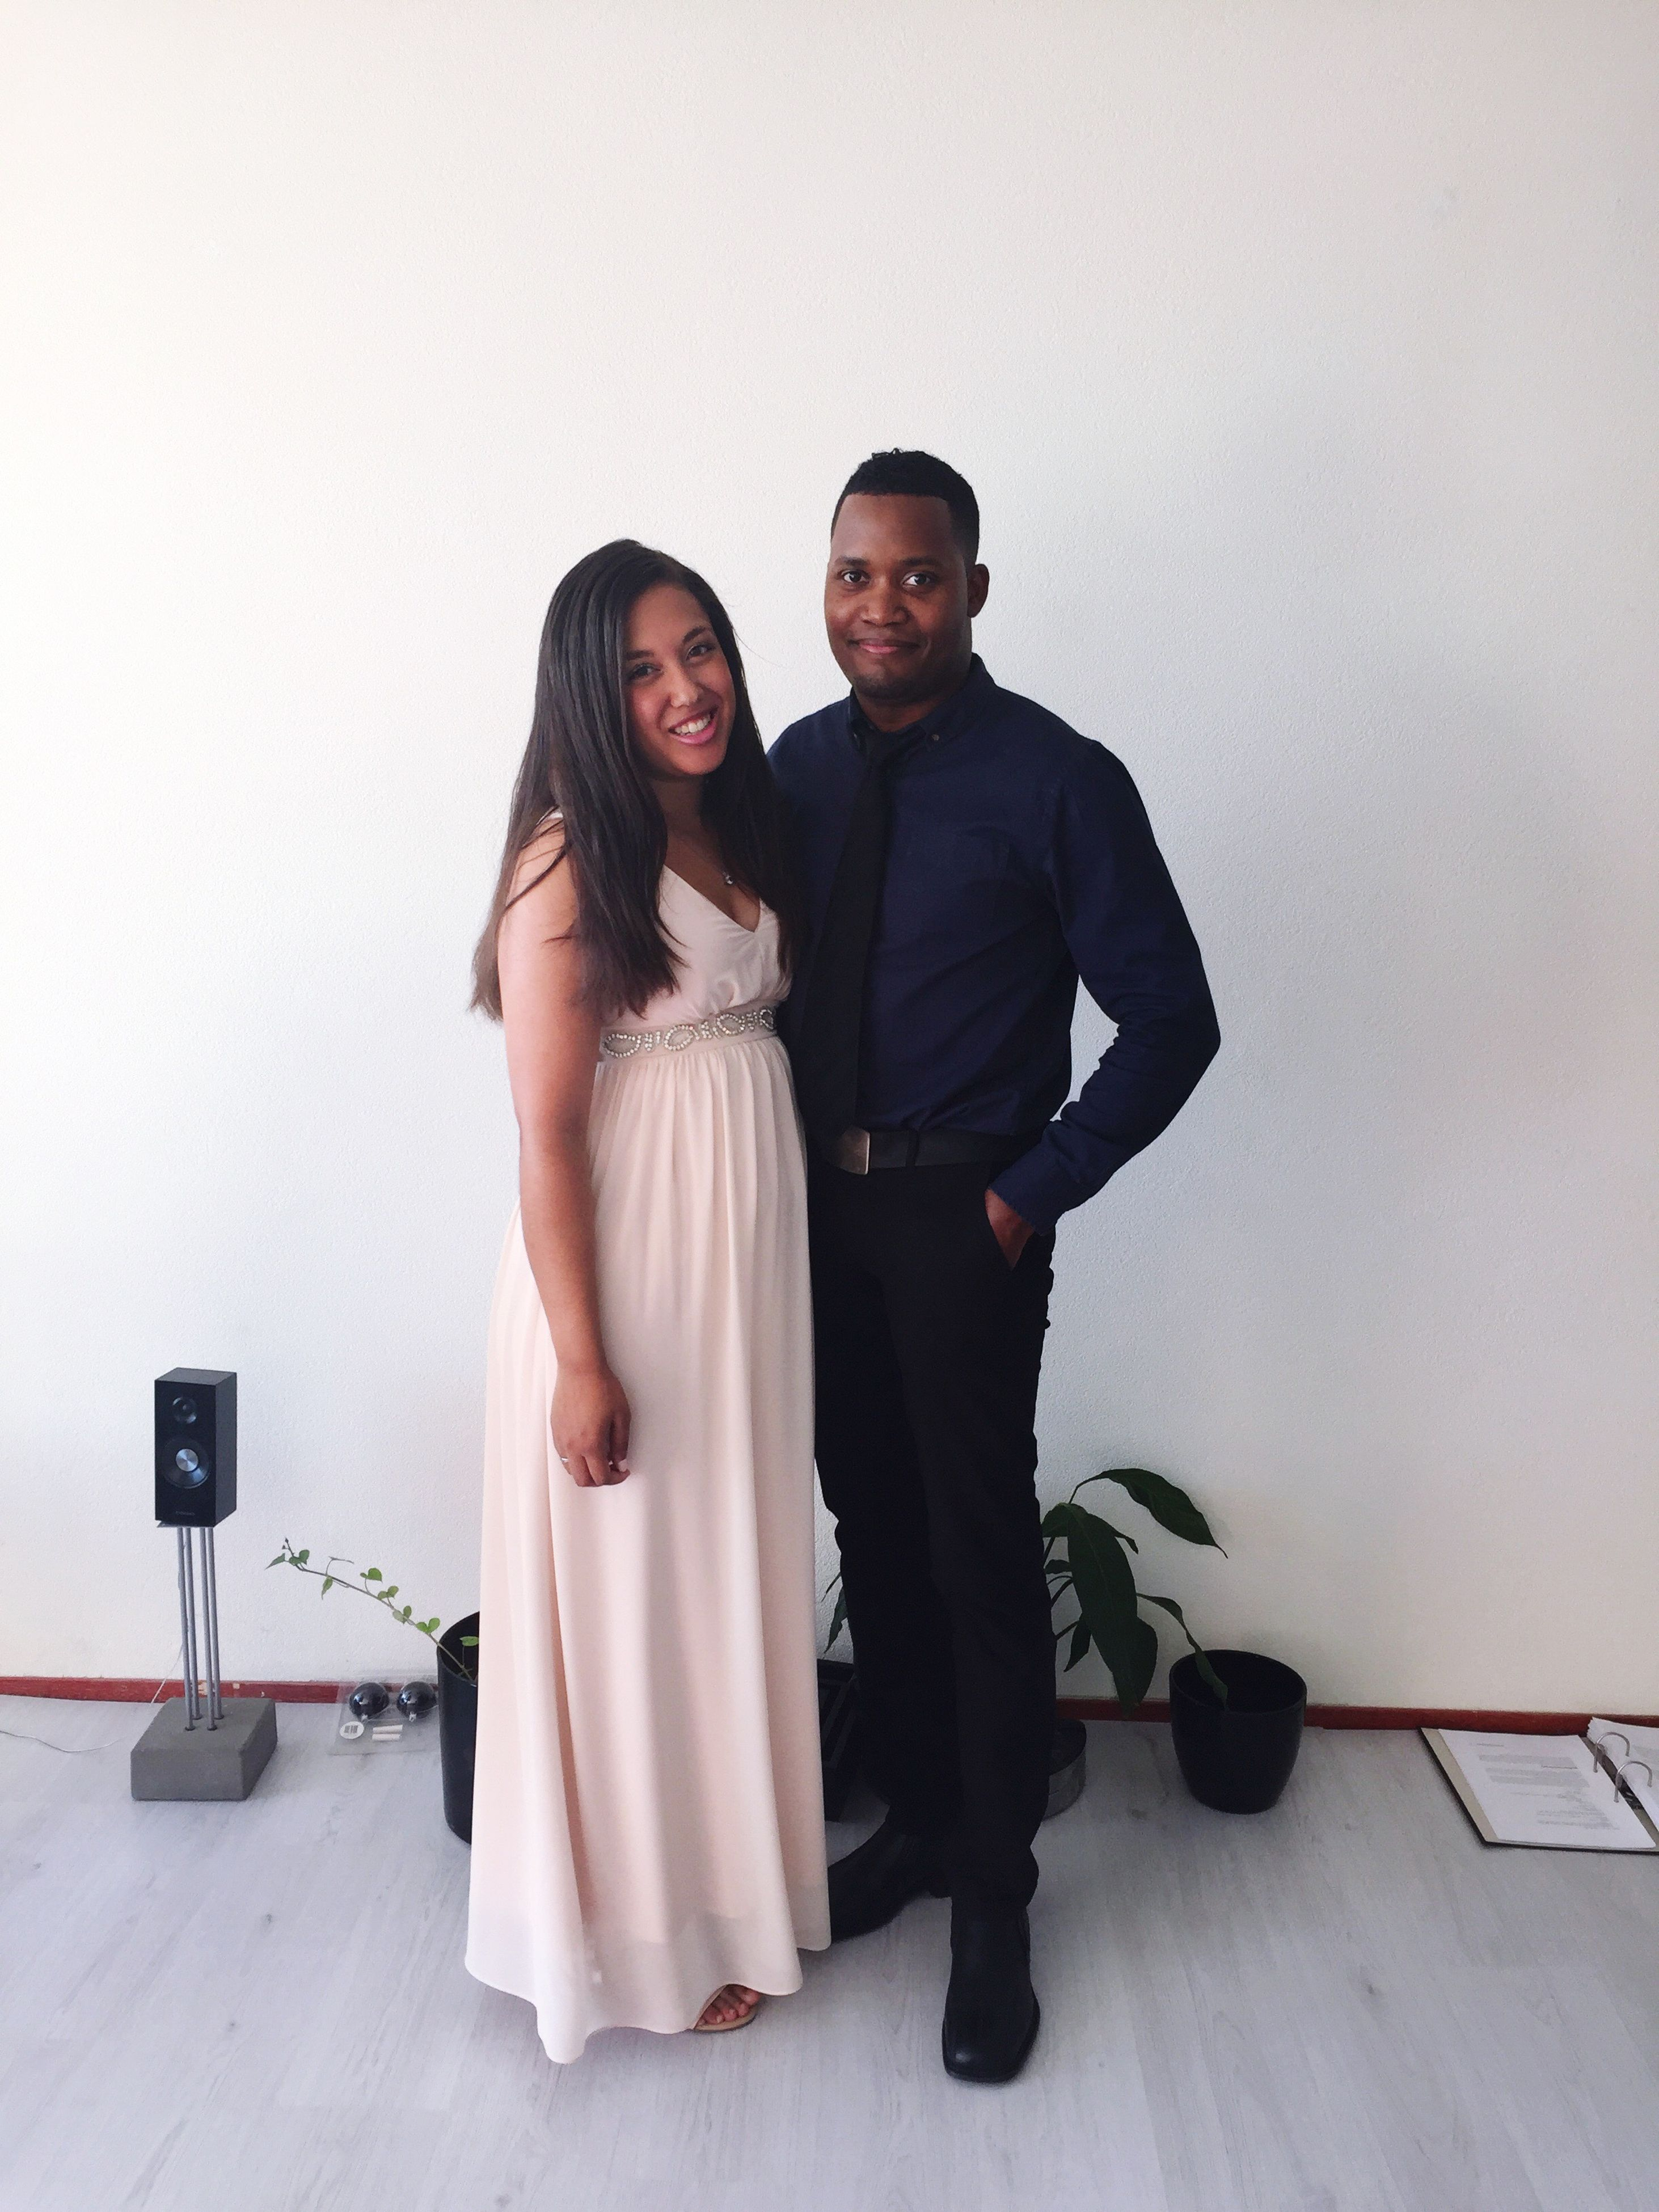 young adult, full length, standing, togetherness, front view, white background, leisure activity, lifestyles, person, young women, studio shot, fashion, portrait, casual clothing, well-dressed, love, couple - relationship, looking at camera, camera - photographic equipment, holding, full suit, friendship, in front of, long hair